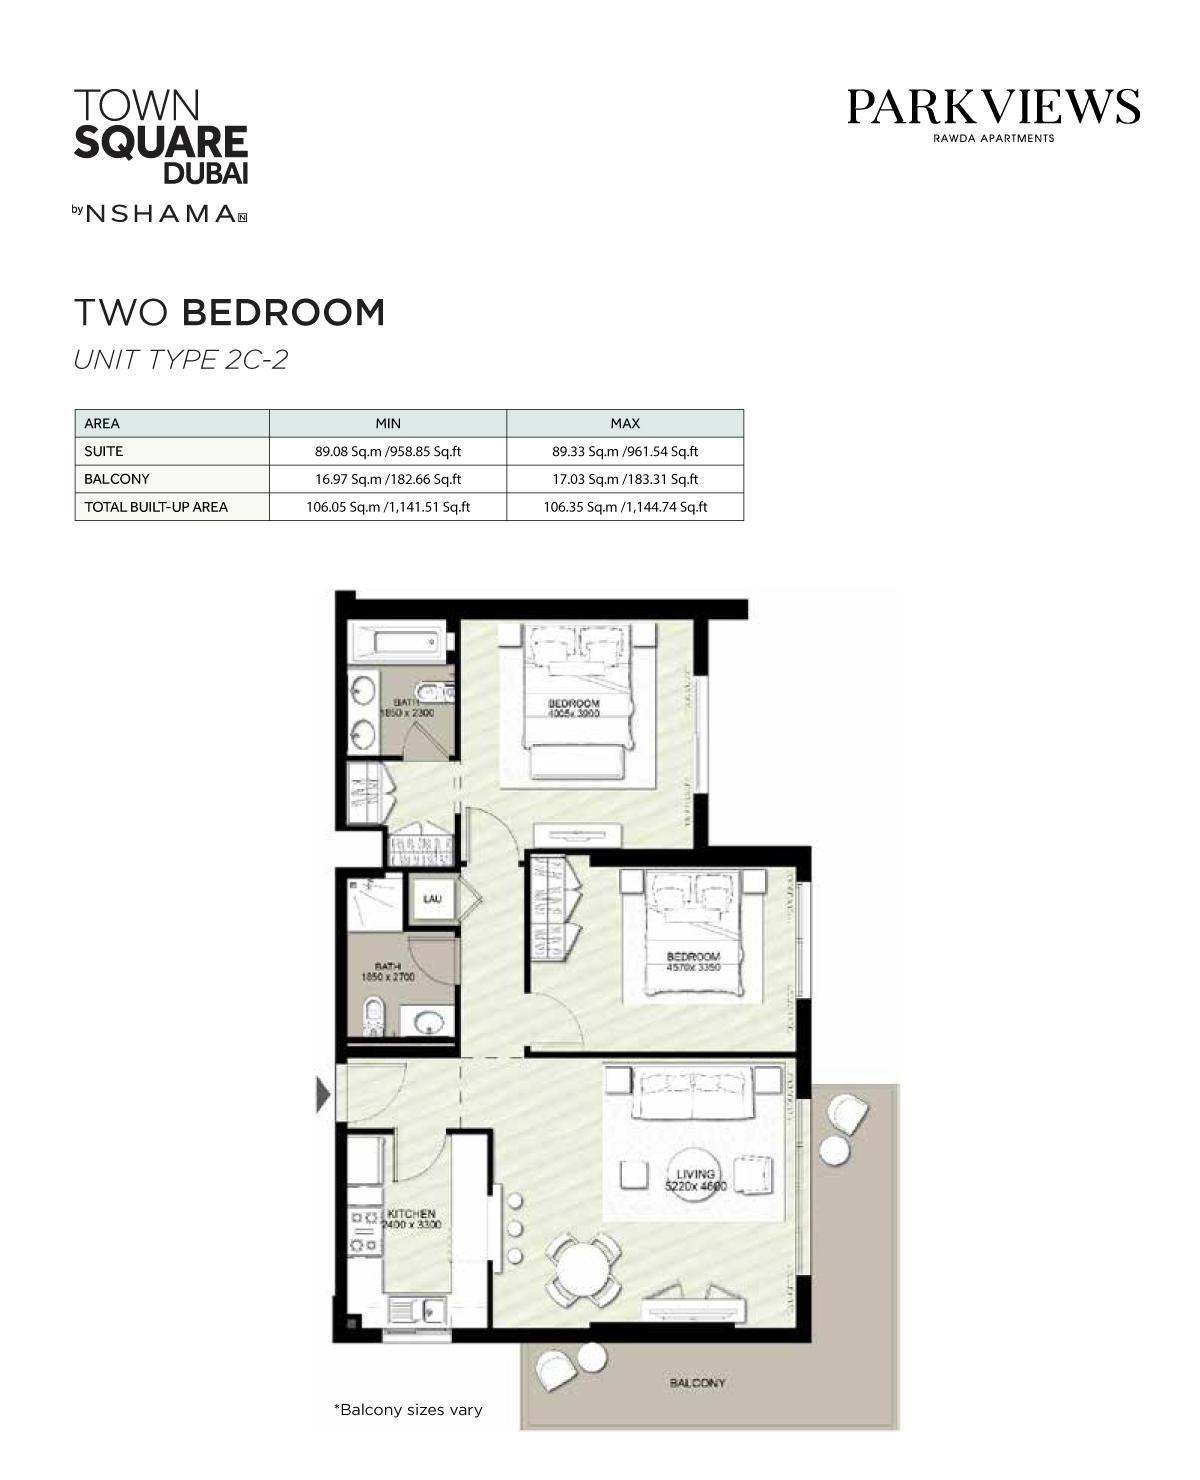 2 Bedroom Unit Type 2c 2 1144.74sqft